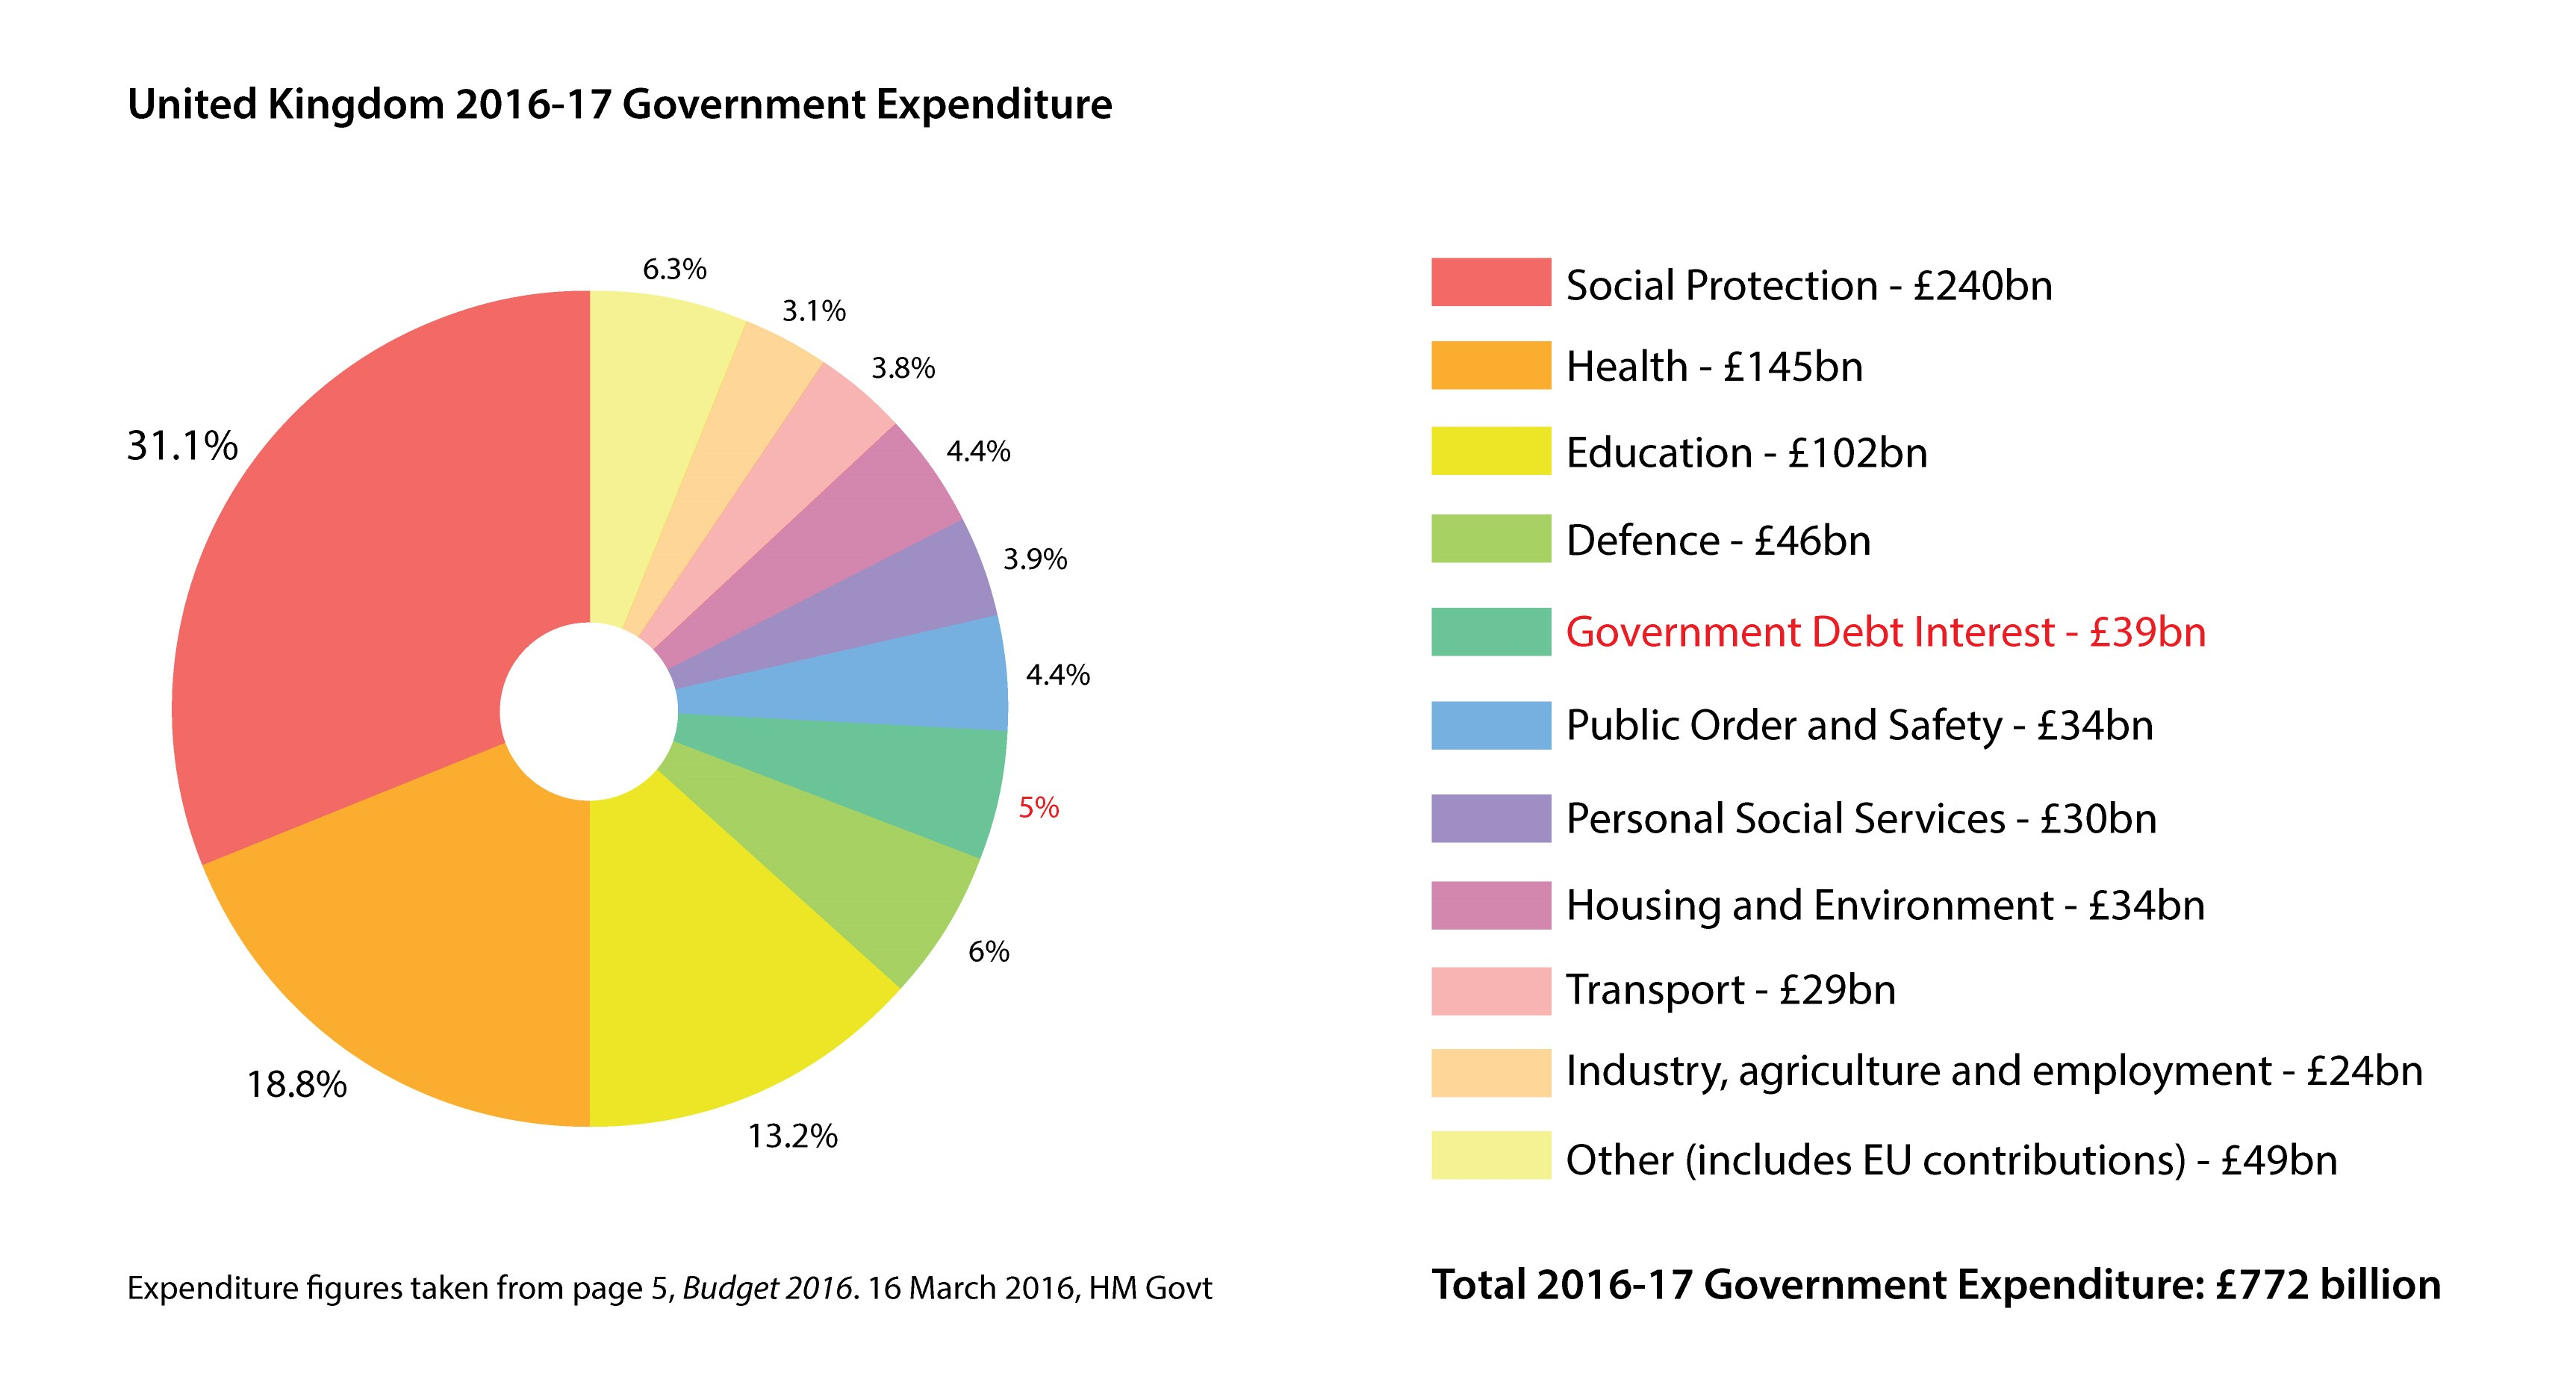 Government spending in the united kingdom wikipedia pie chart of uk central government expenditure 2016 17 debt interest is shown in dark green social protection includes pensions and welfare nvjuhfo Image collections